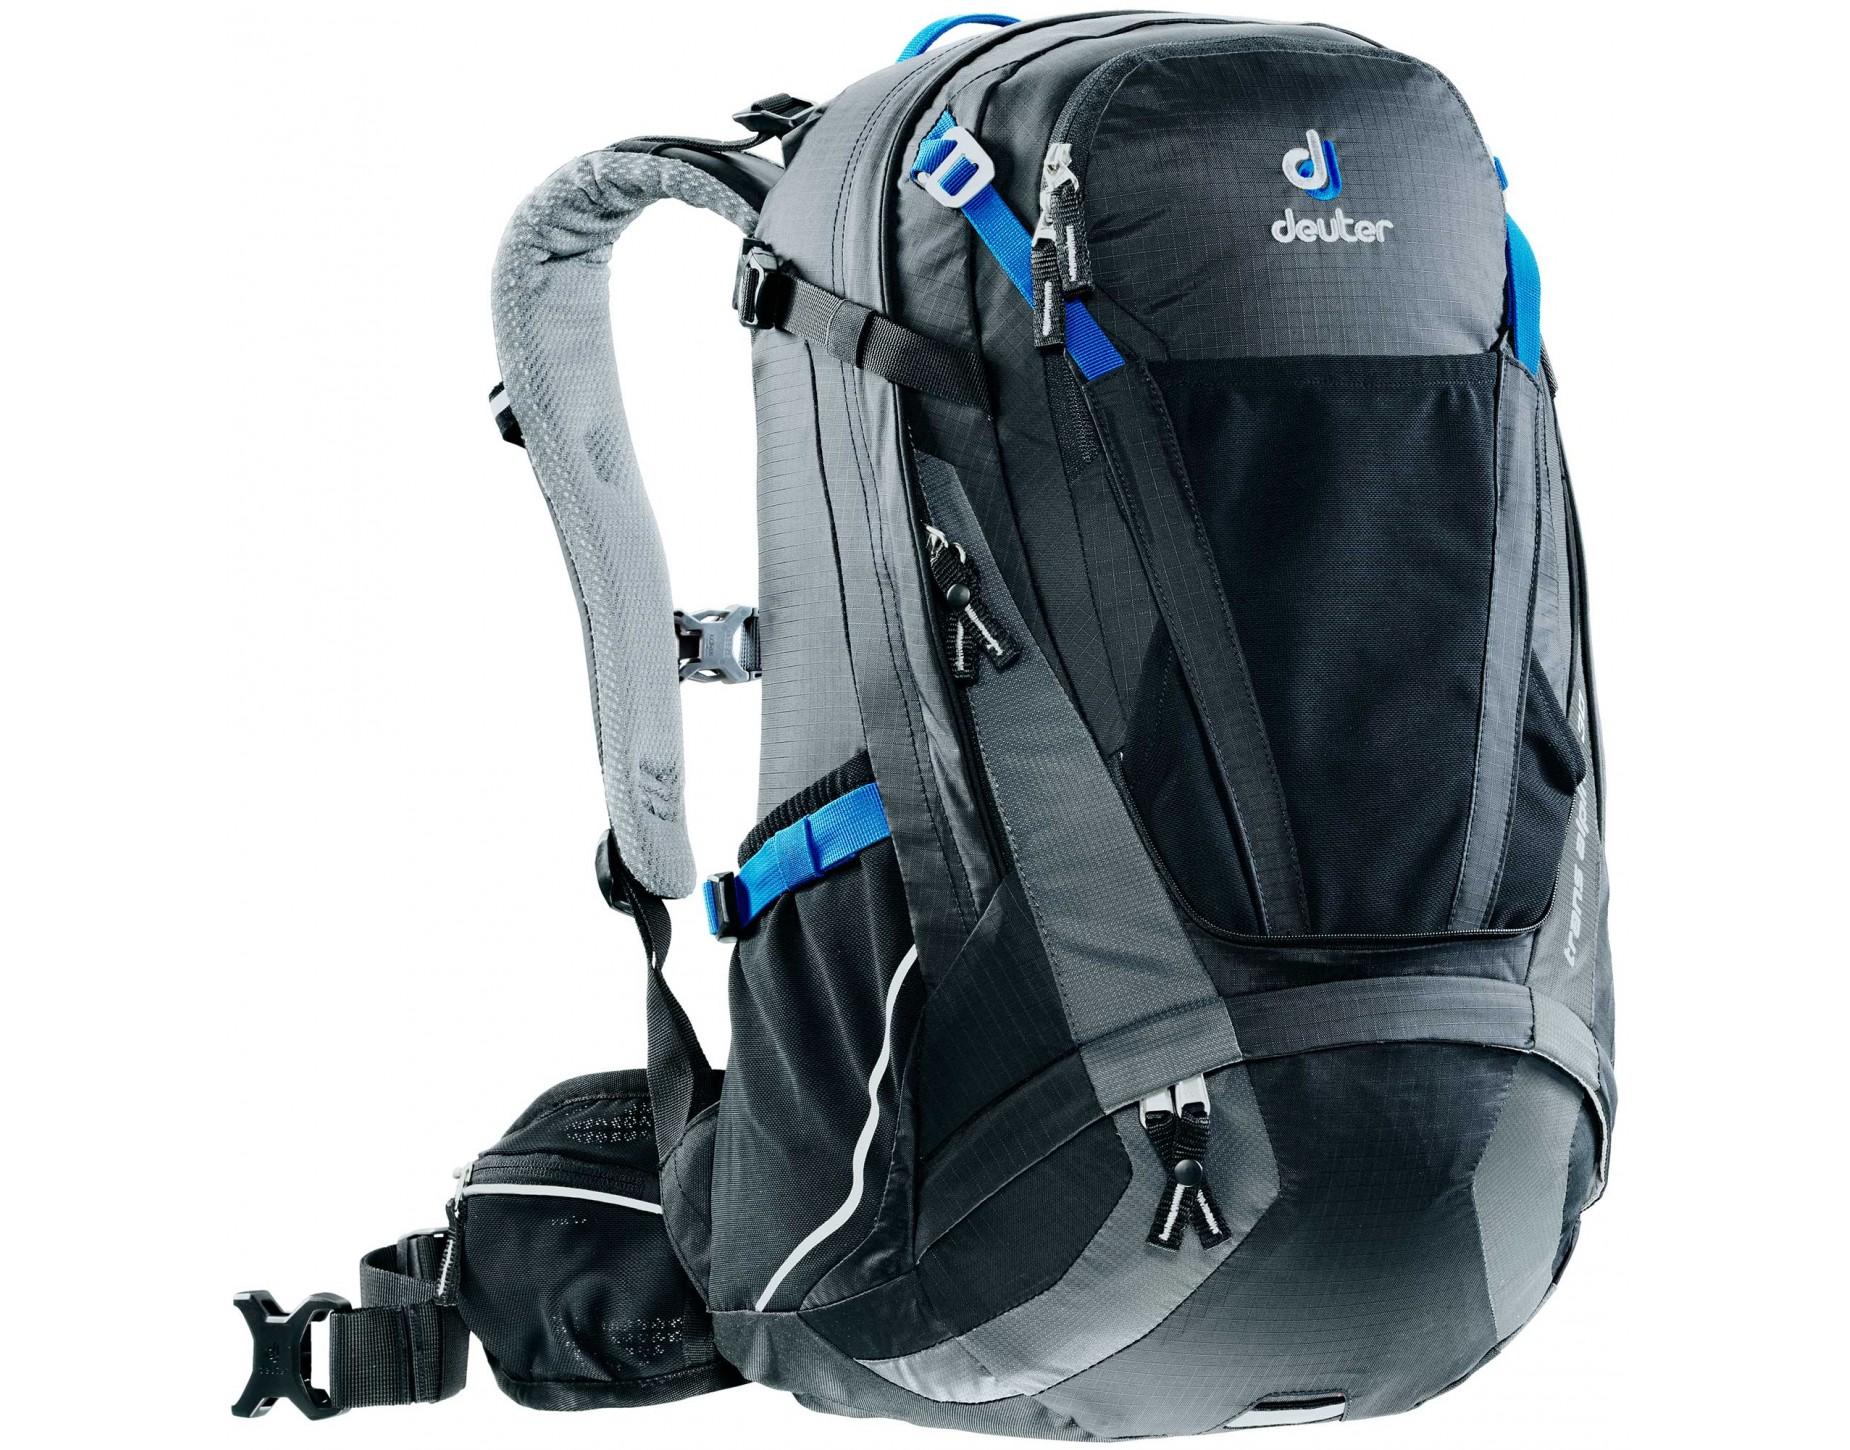 deuter trans alpine 30 rucksack genau was du brauchst. Black Bedroom Furniture Sets. Home Design Ideas